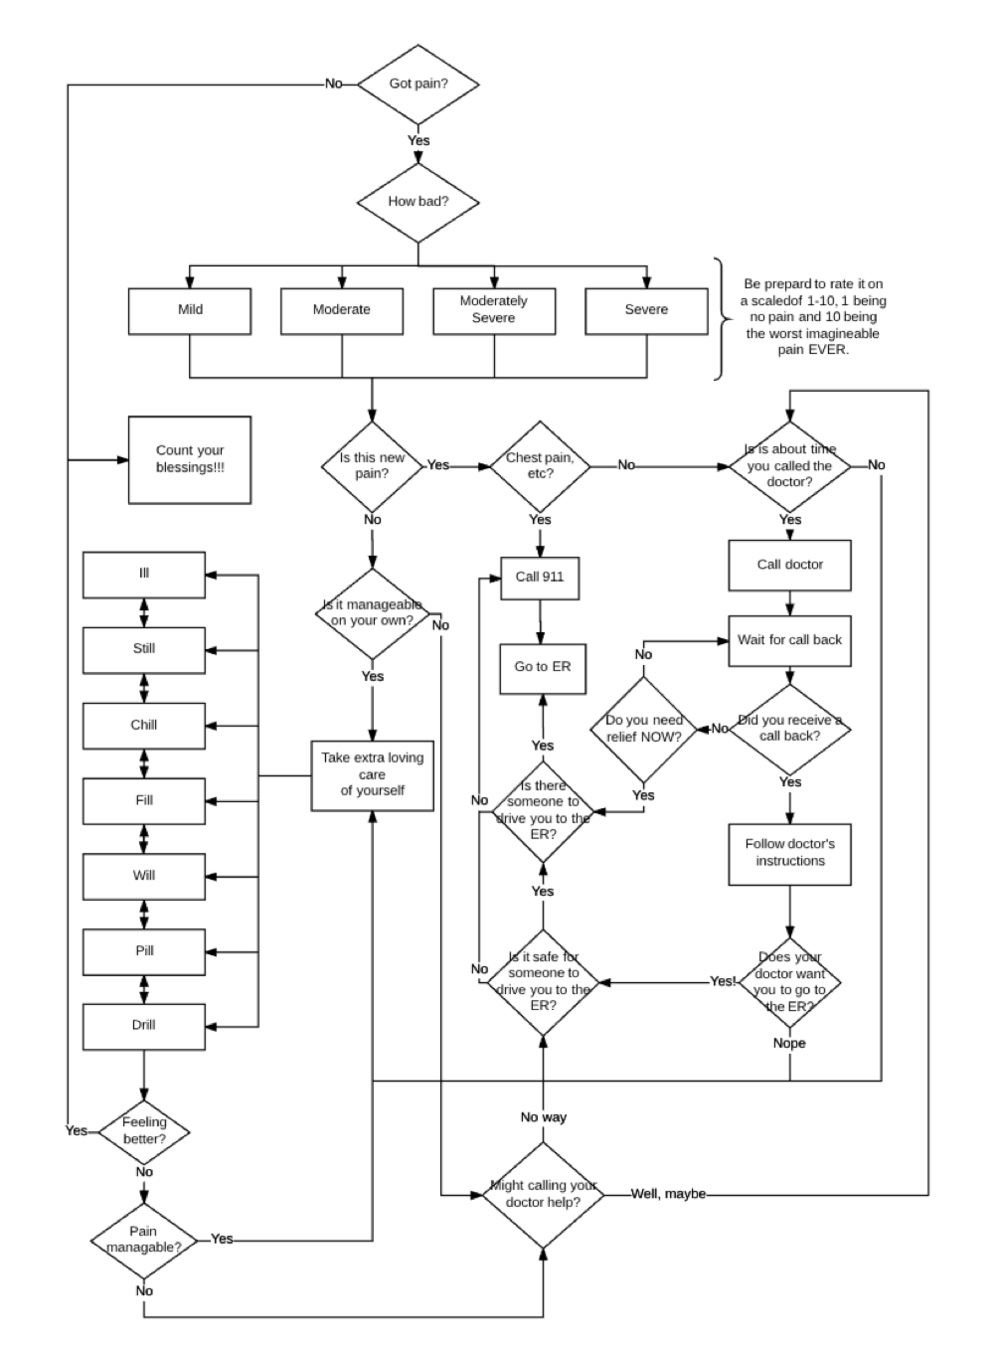 Pain process flow copy.png